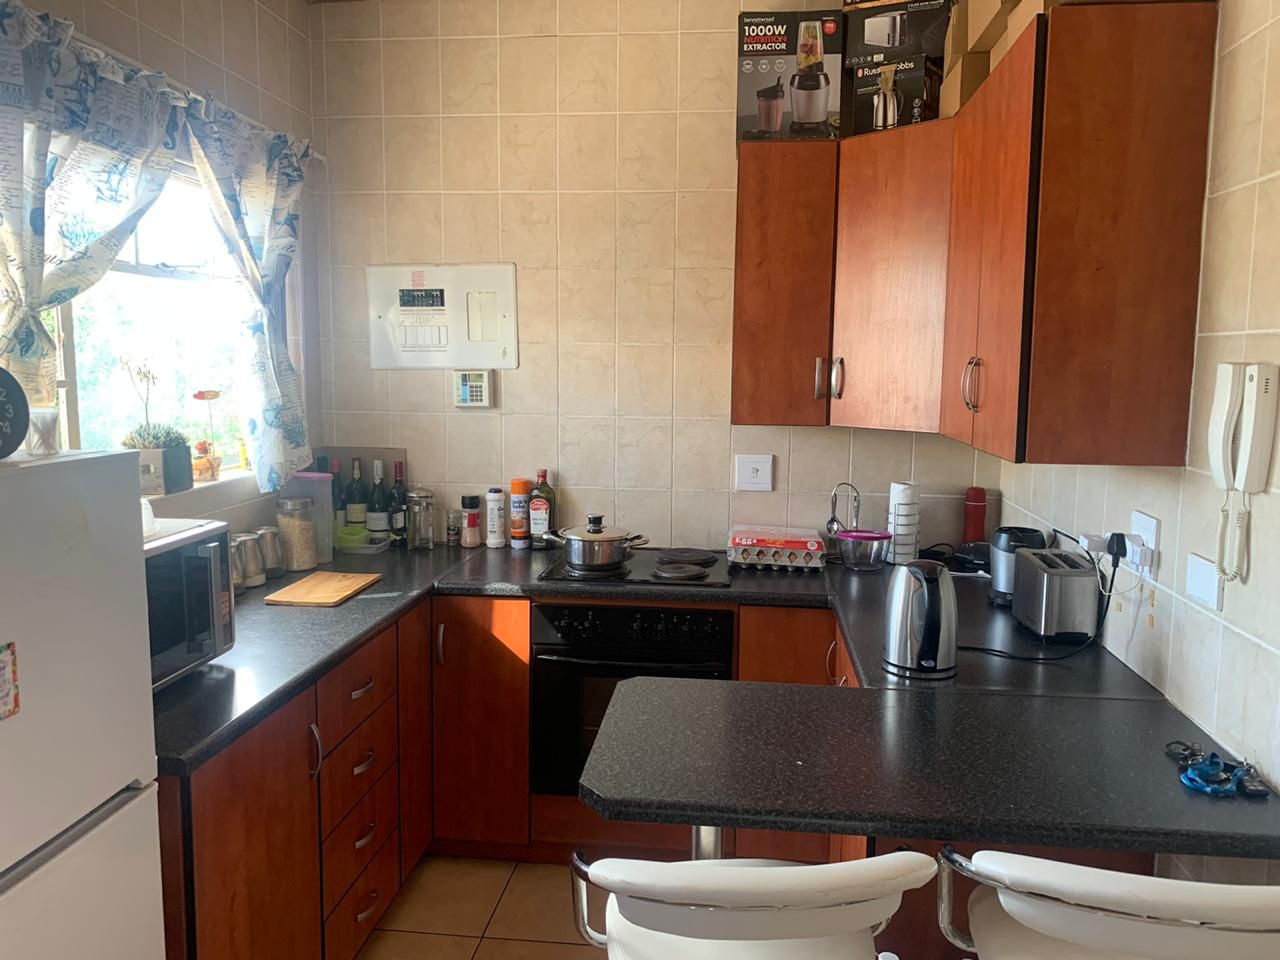 Apartment in Bult - WhatsApp Image 2019-11-19 at 16.23.18 (1).jpeg